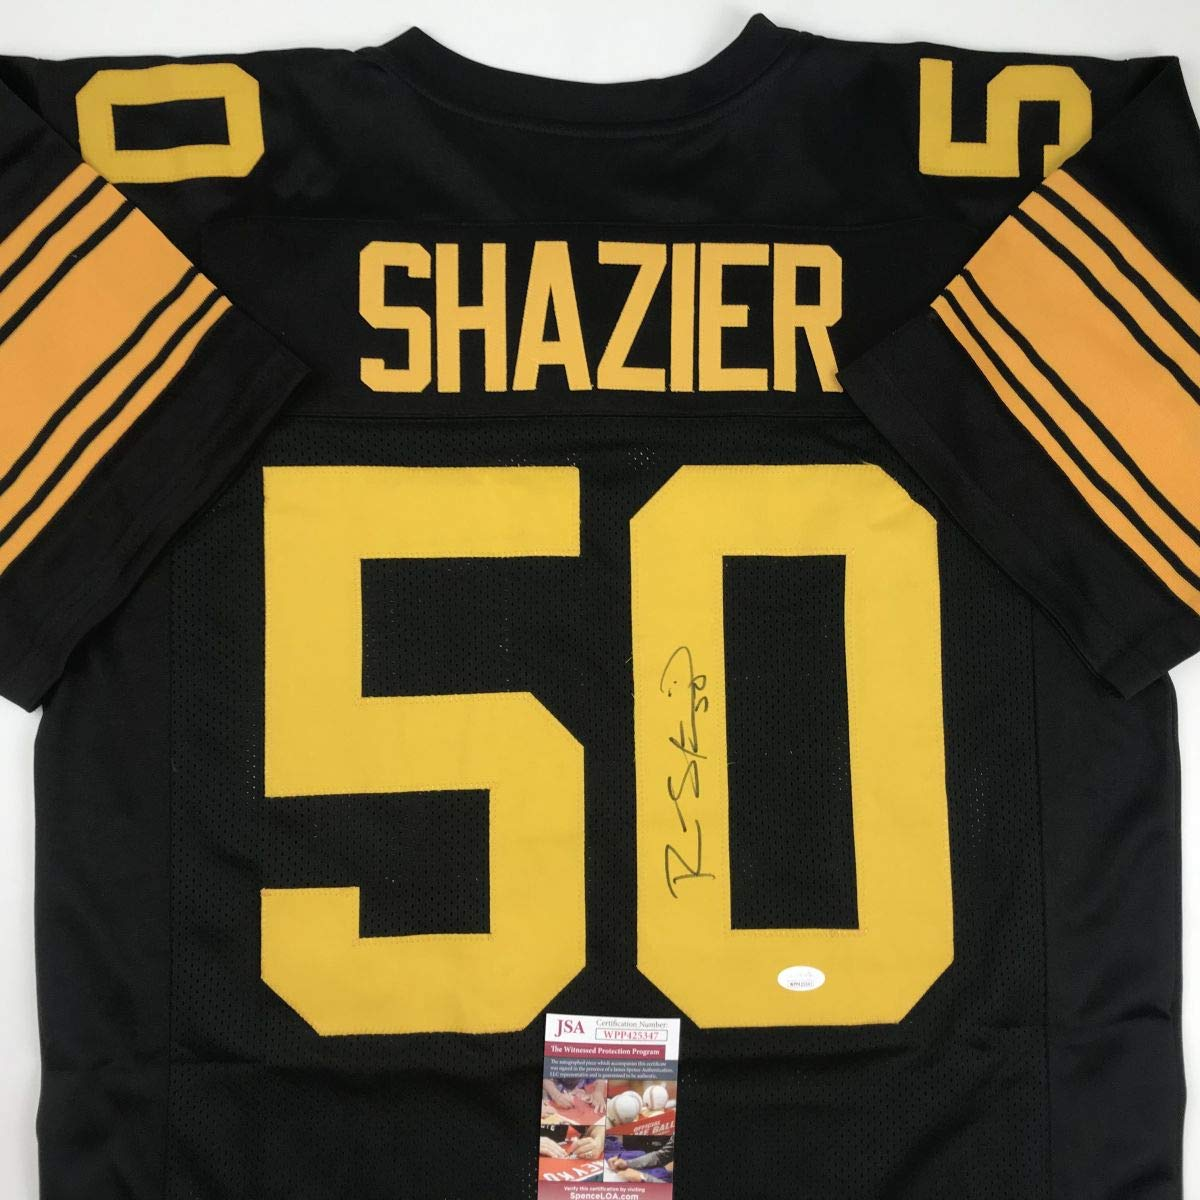 online store 166a1 f12ed Autographed/Signed Ryan Shazier Pittsburgh Color Rush ...